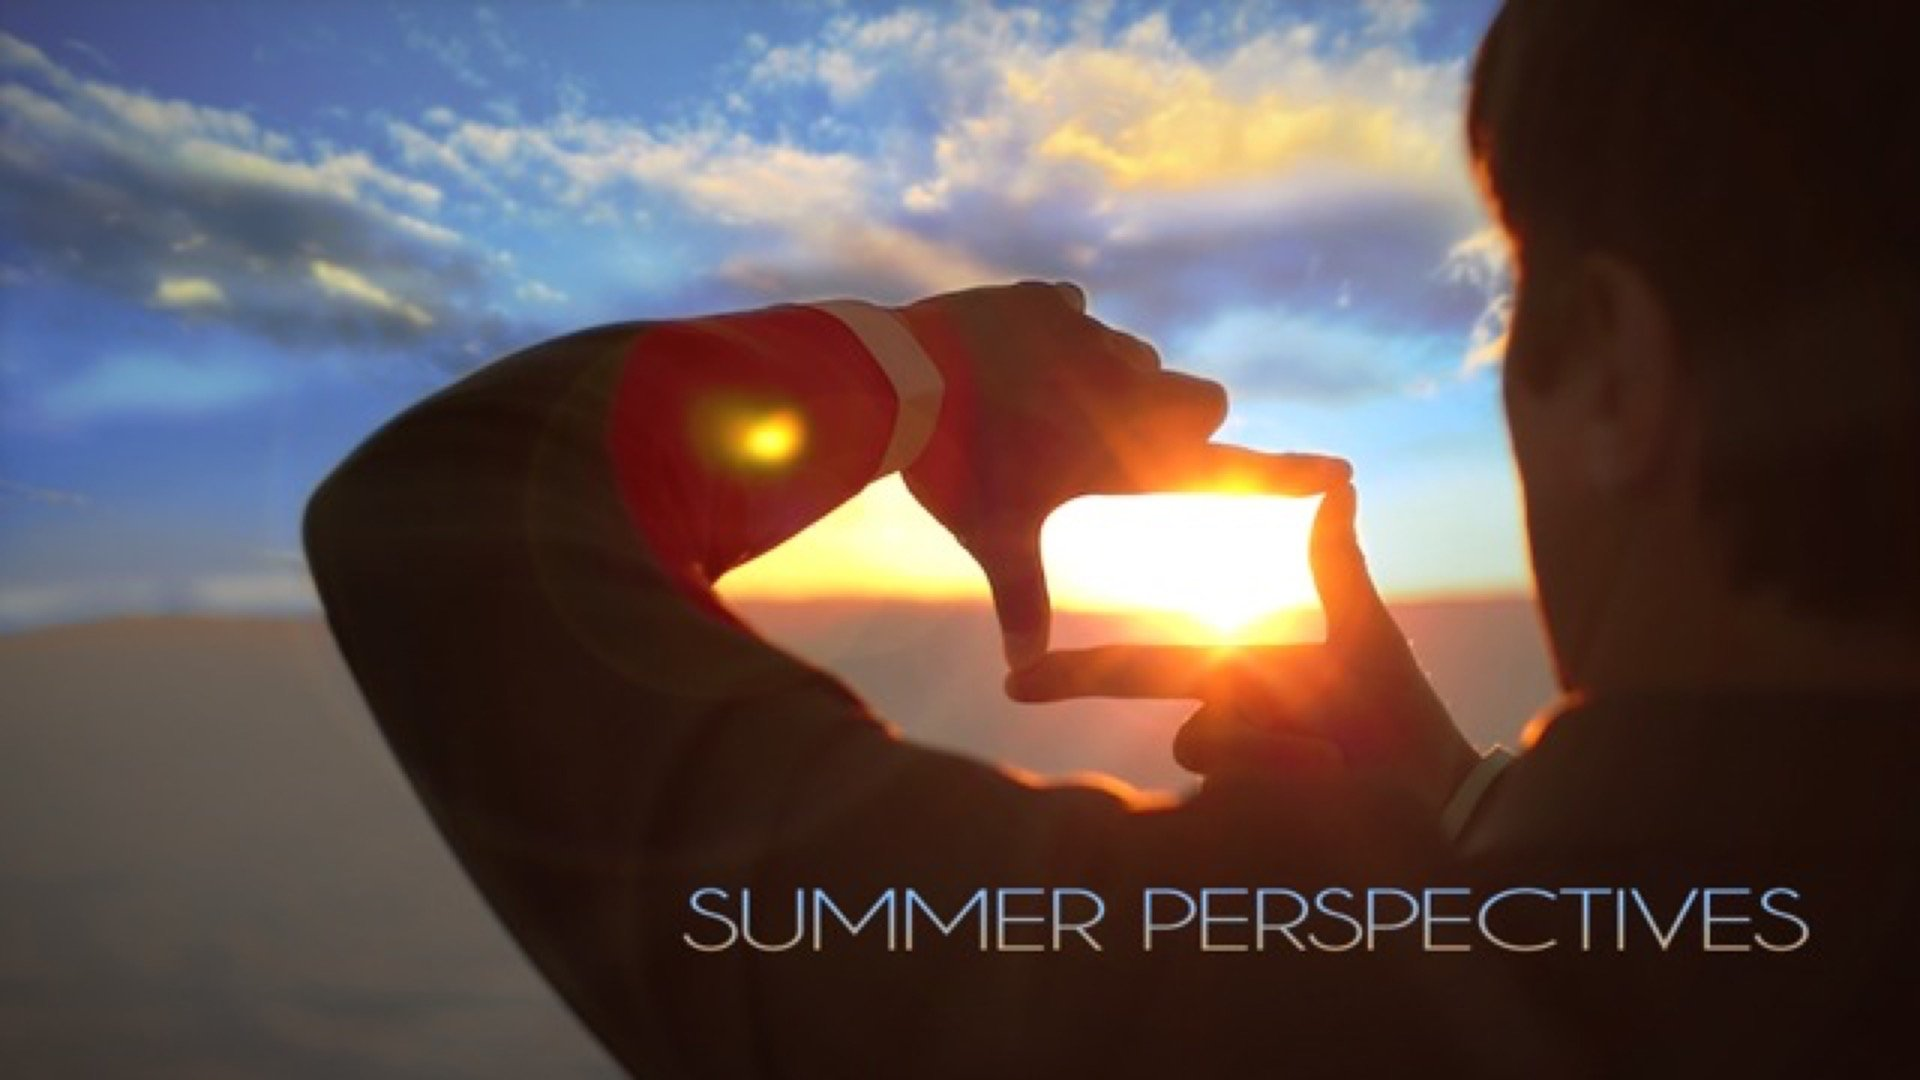 Summer Perspectives